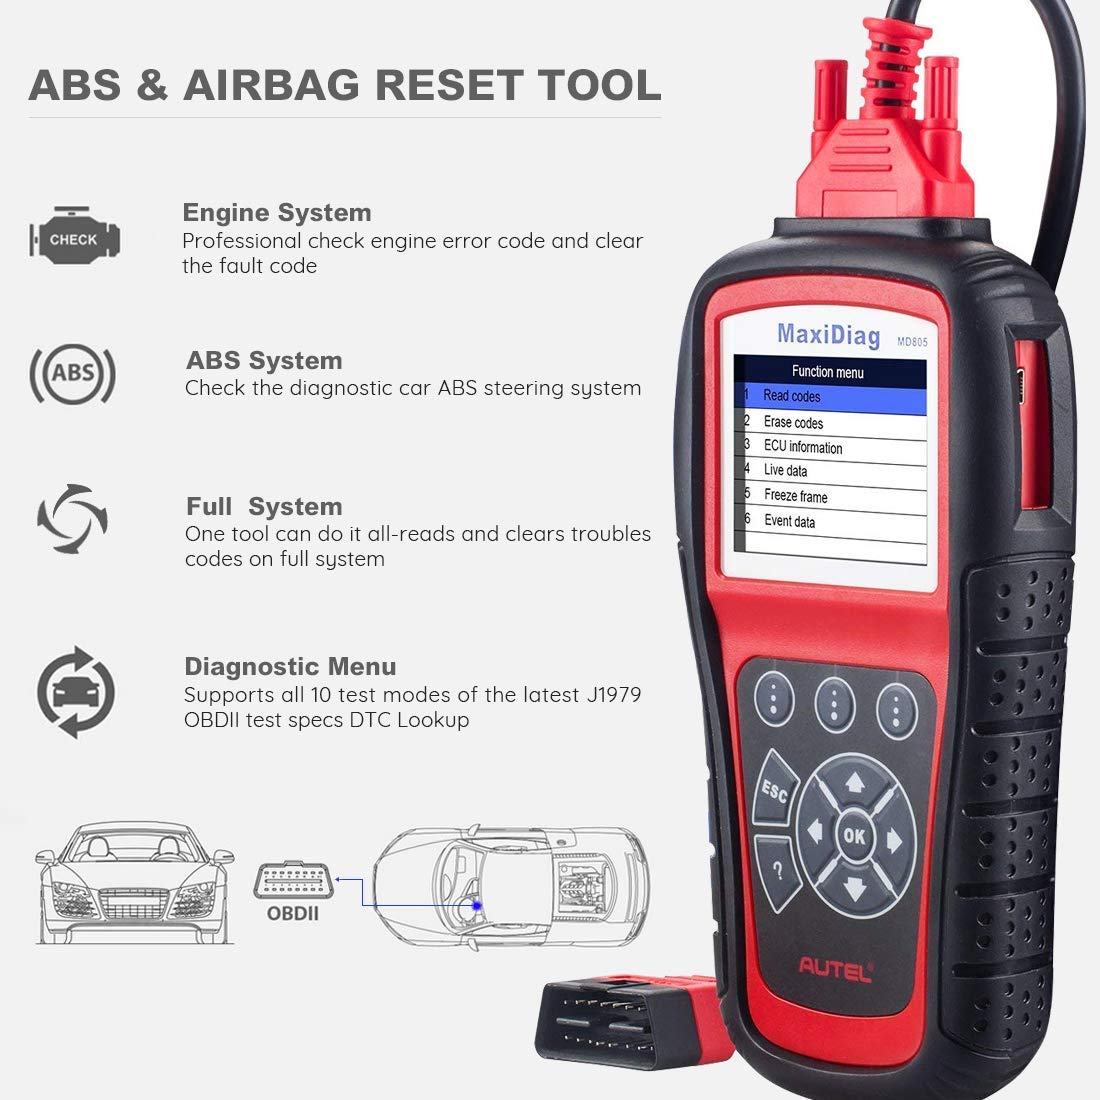 Autel MaxiDiag MD805 OBD2 Scanner Full System Diagnostic Tool with Engine, Transmission, ABS, Airbag, EPB, Oil Reset -Advanced Version of MD802 by Autel (Image #2)